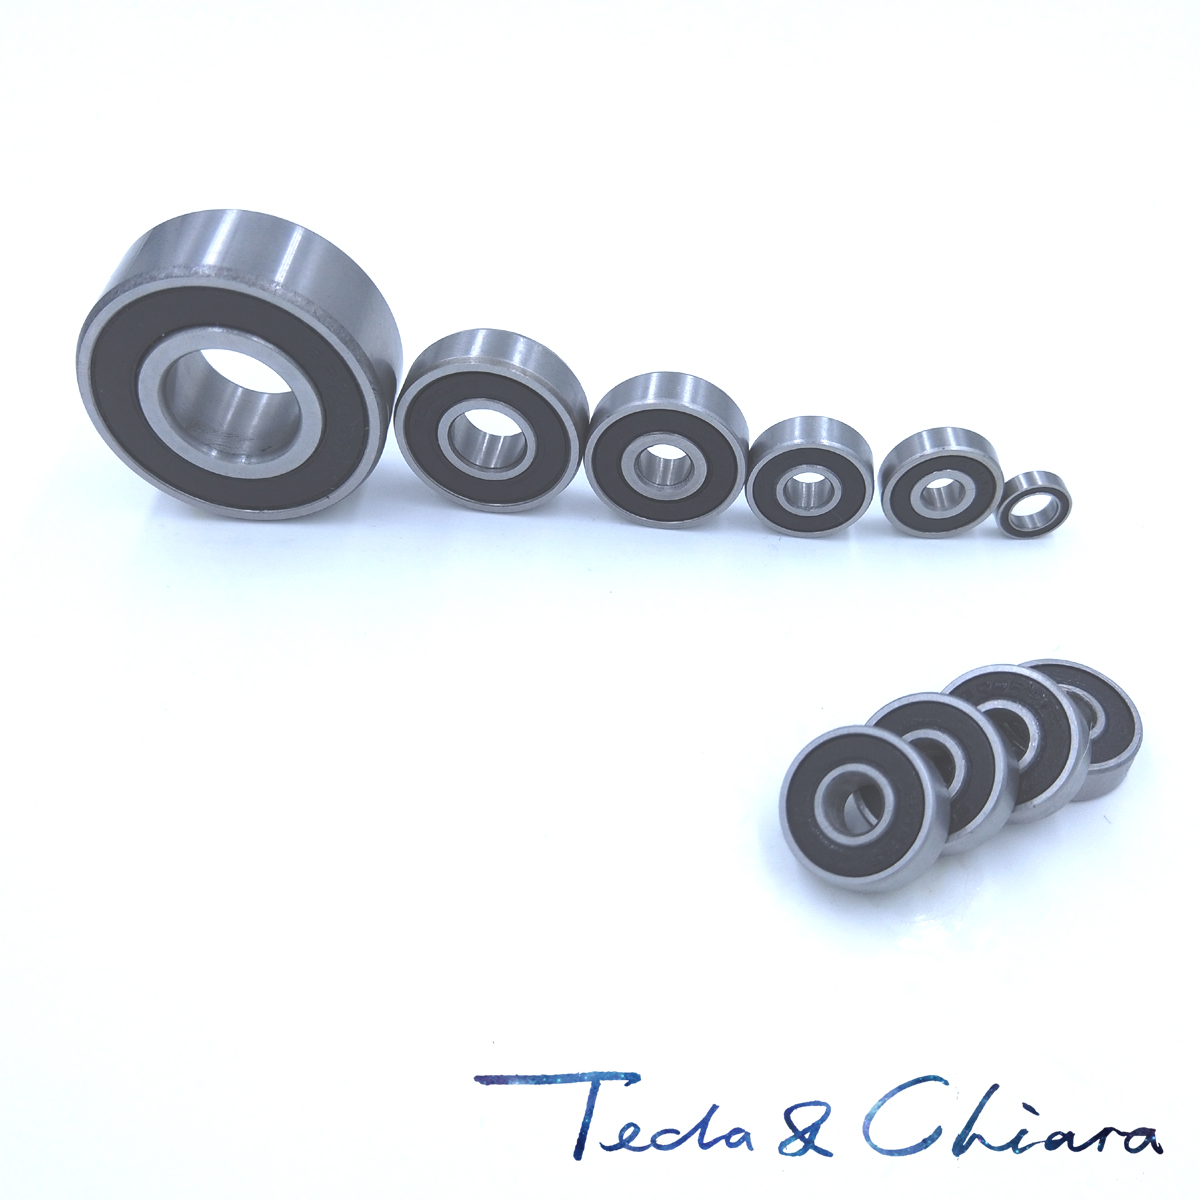 2Pcs <font><b>6202</b></font>-<font><b>2RS</b></font> 6202RS 6202rs <font><b>6202</b></font> rs Deep Groove Ball Bearings 15 x 35 x 11mm Free shipping High Quality image